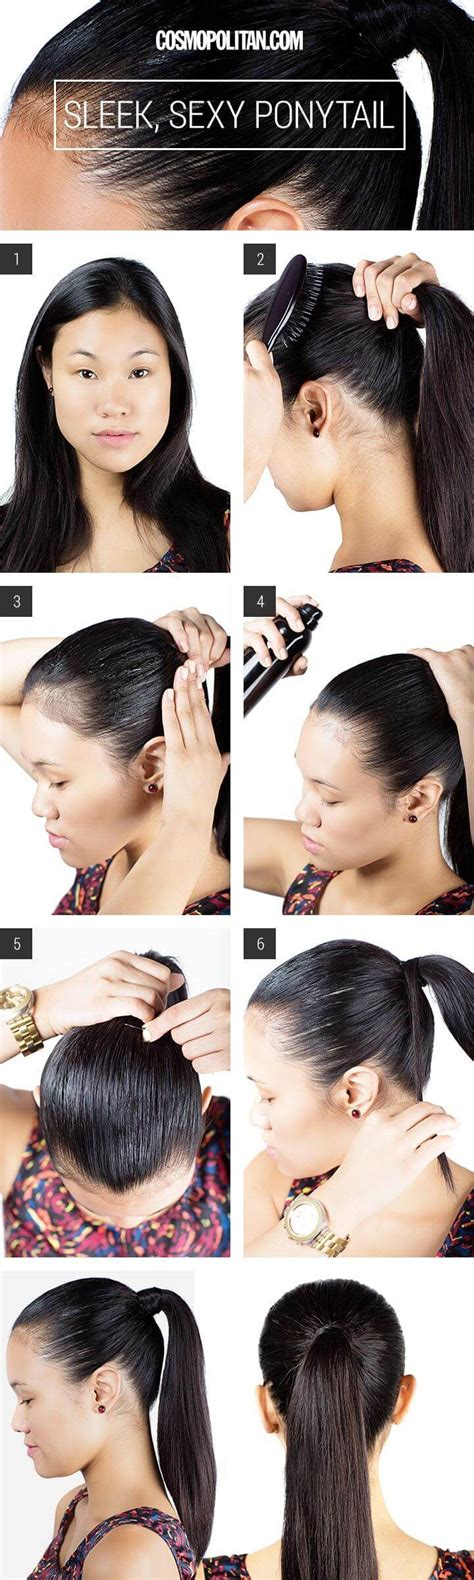 slick back weave hairstyles 25 diy hairstyles you can do with these step by step